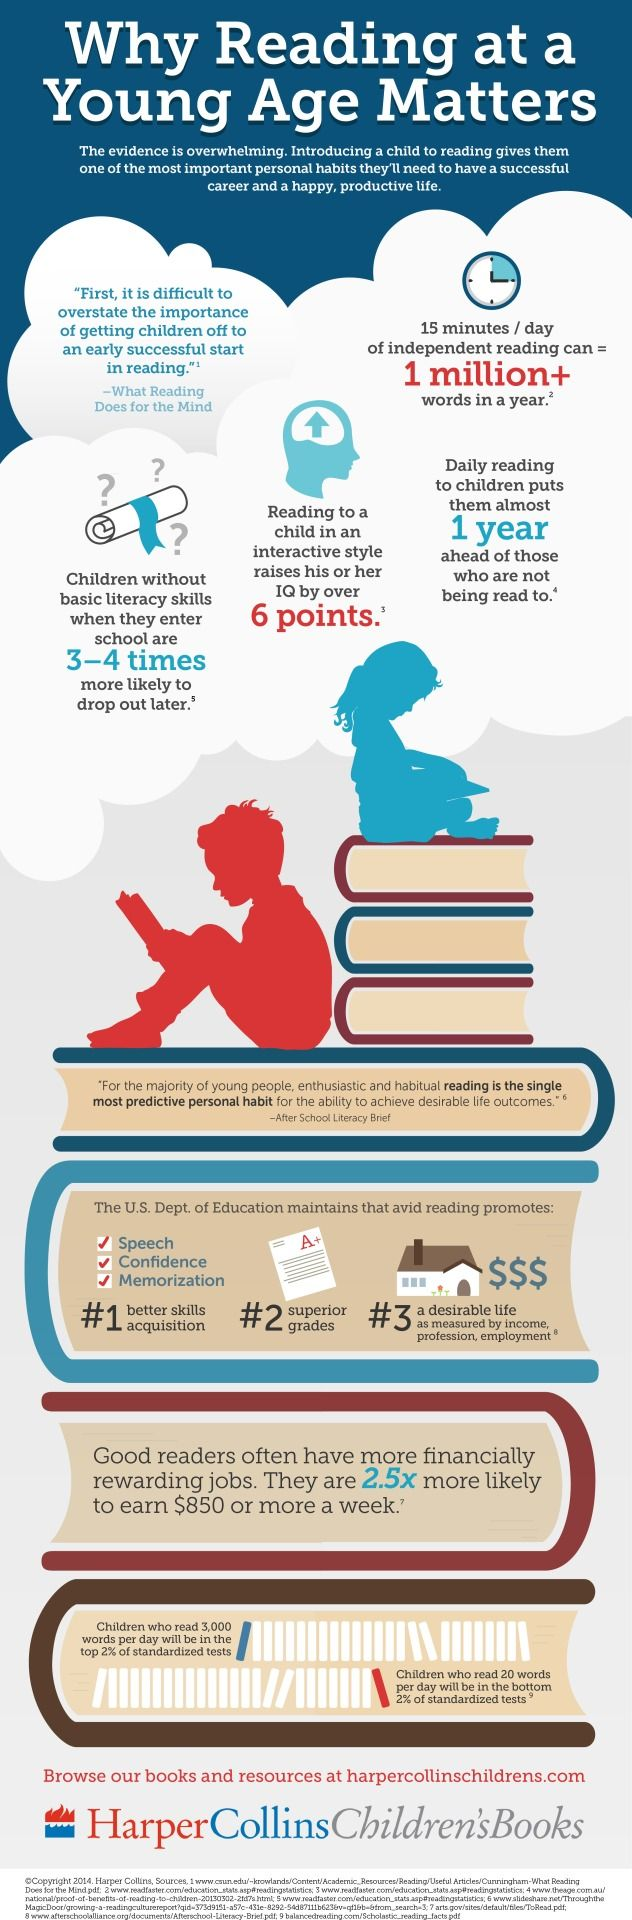 the importance of literacy Abc's of early literacy: the importance of developing early literacy skills emergent literacy, or reading readiness, skills begin to develop very early in life.